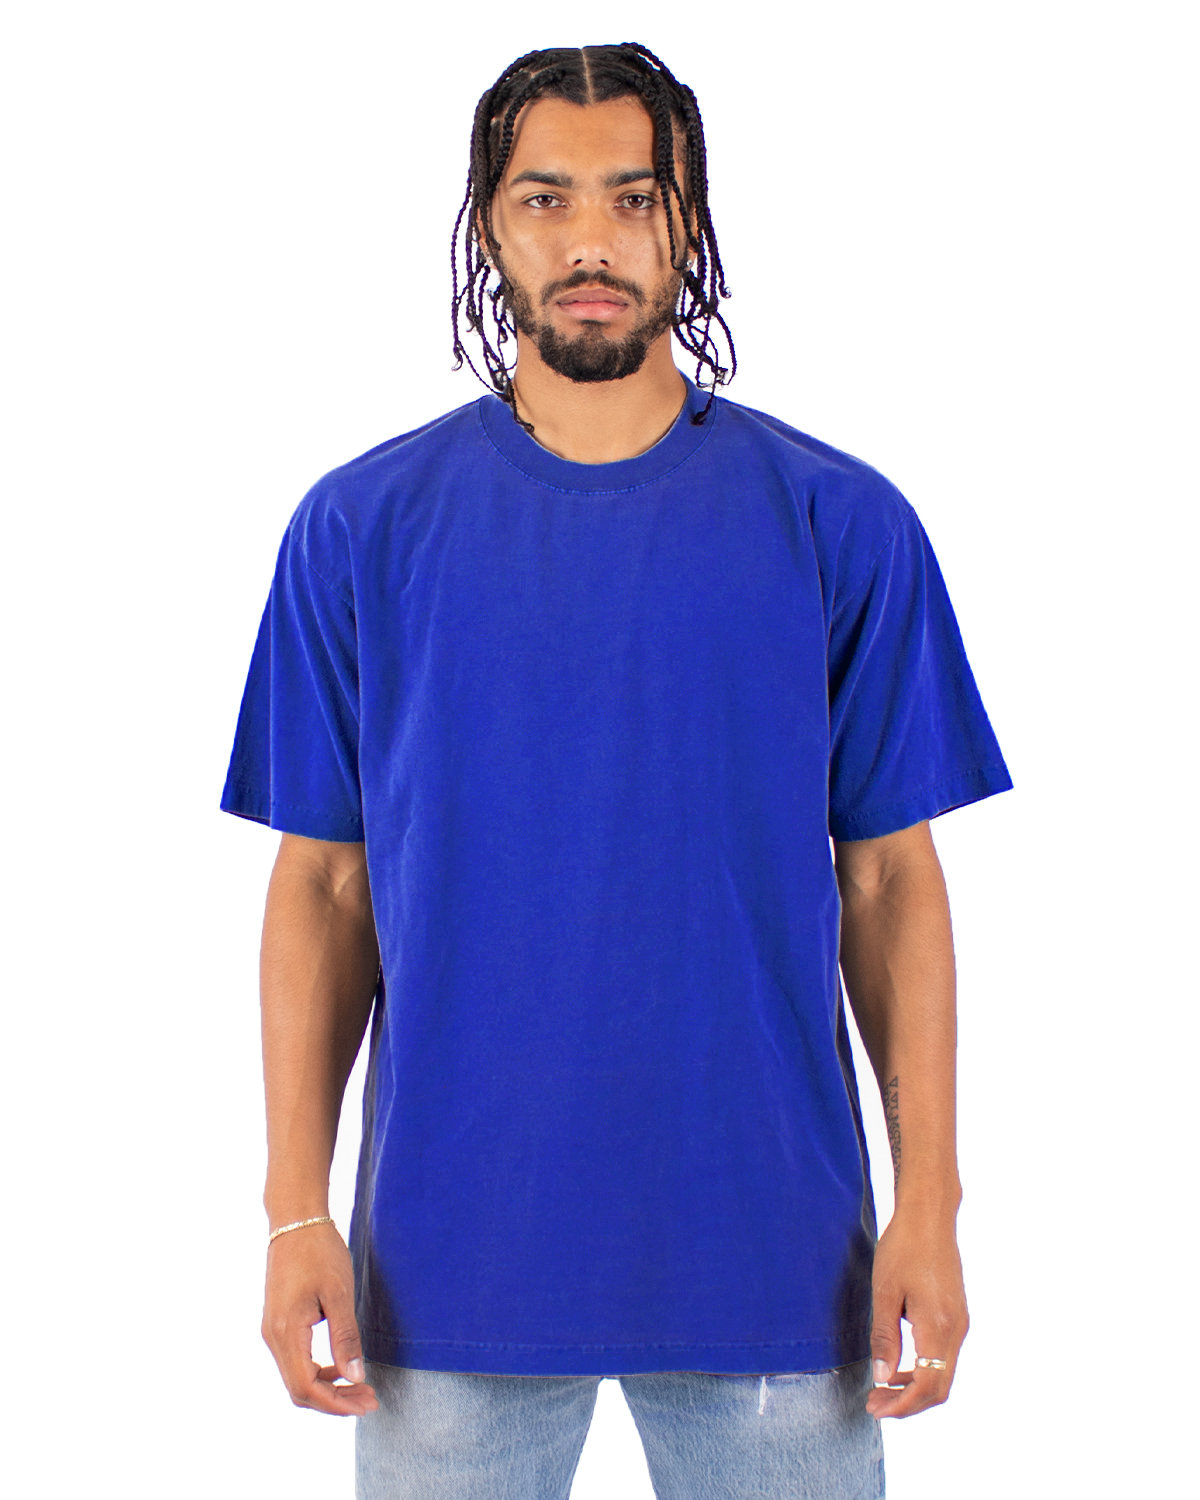 Shaka Wear Drop Ship Garment-Dyed Crewneck T-Shirt ROYAL